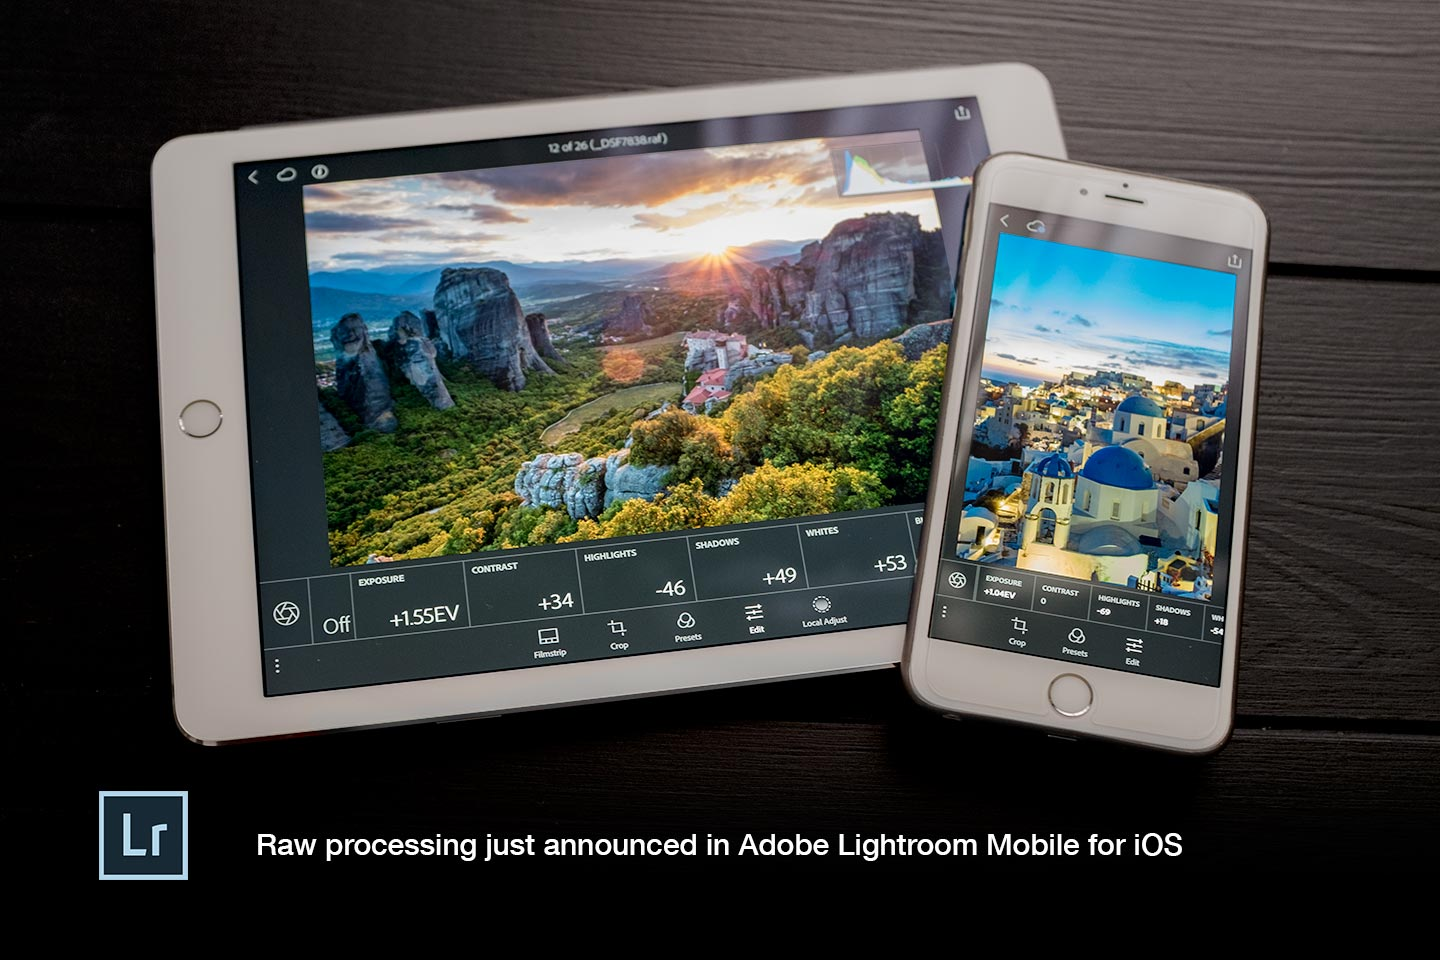 Adobe announces raw photo editing in Lightroom Mobile for iOS!